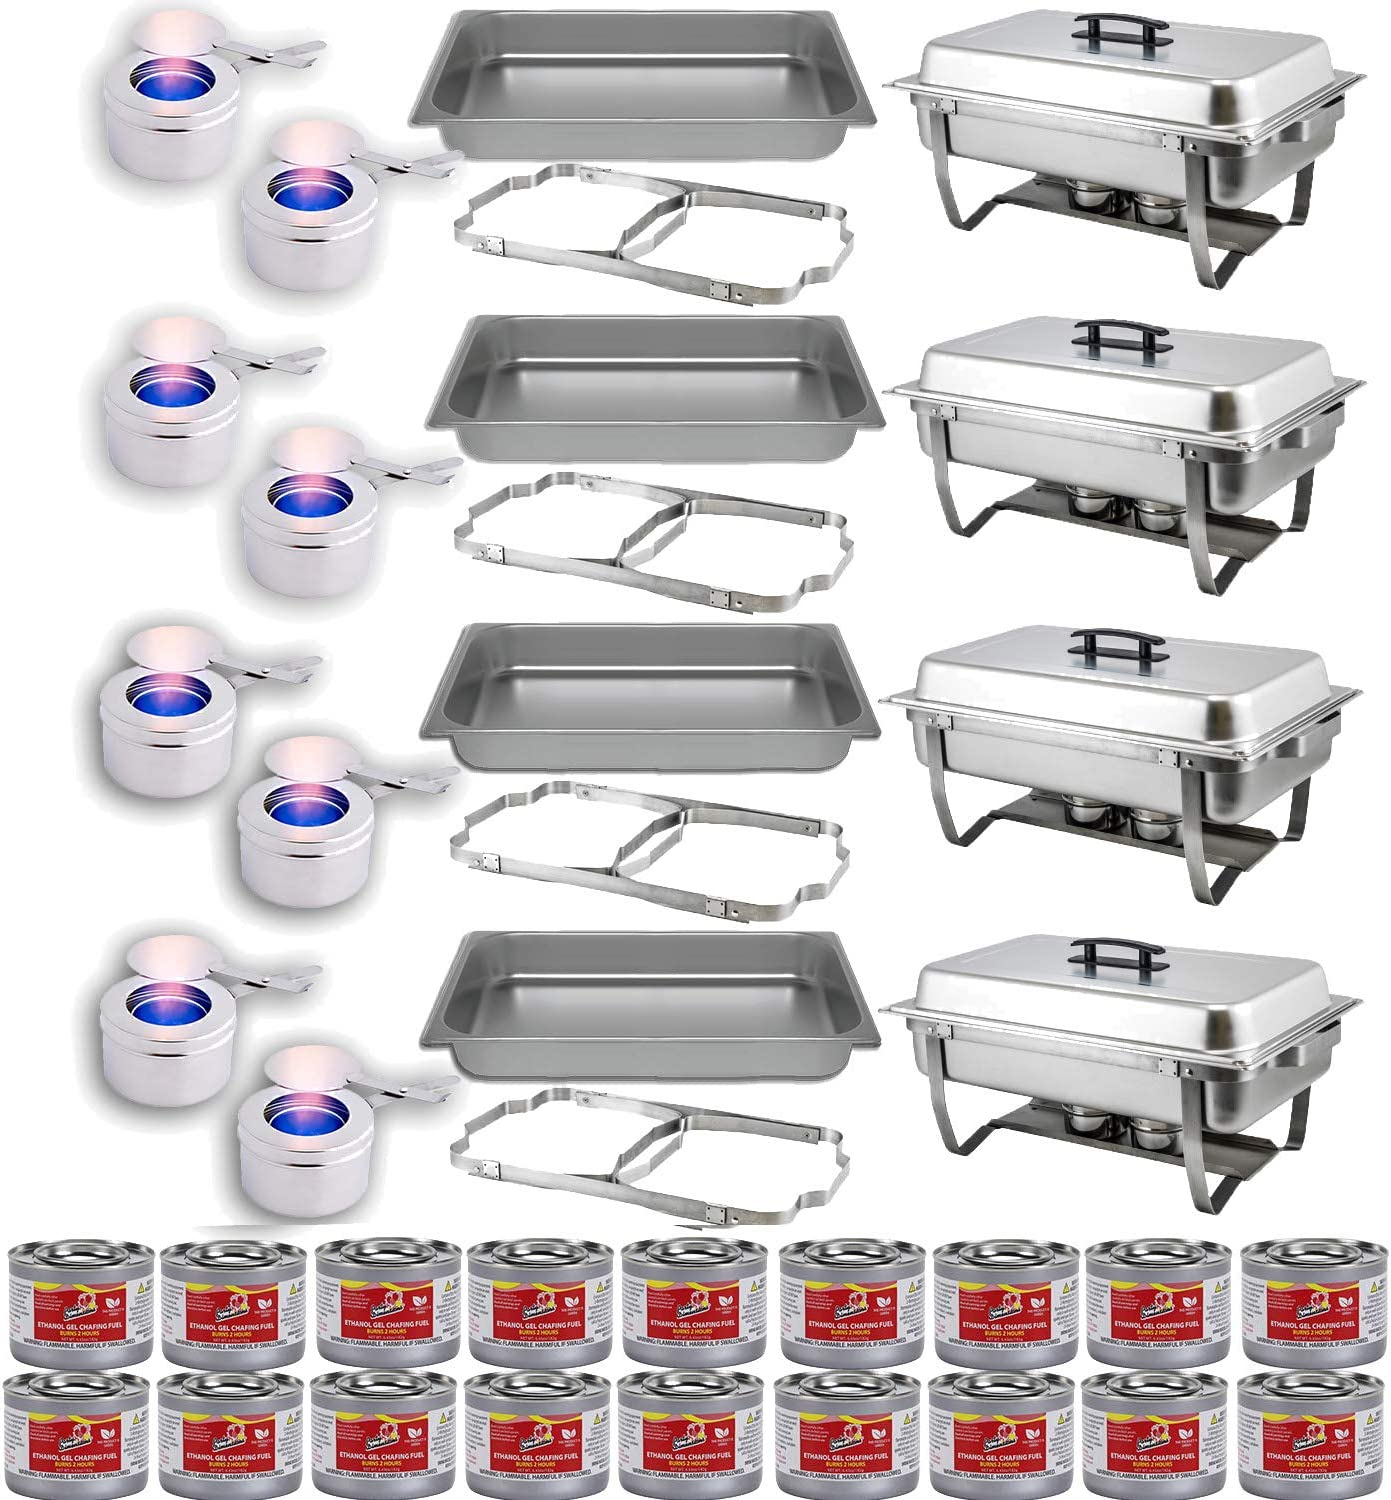 Chafing Dish Buffet Set w/Fuel — Folding Frame + Water Pan + Food Pan (8 qt) + 8 Fuel Holders + 18 Fuel Cans – 4 Full Warmer Kit, Stainless Steel Construction